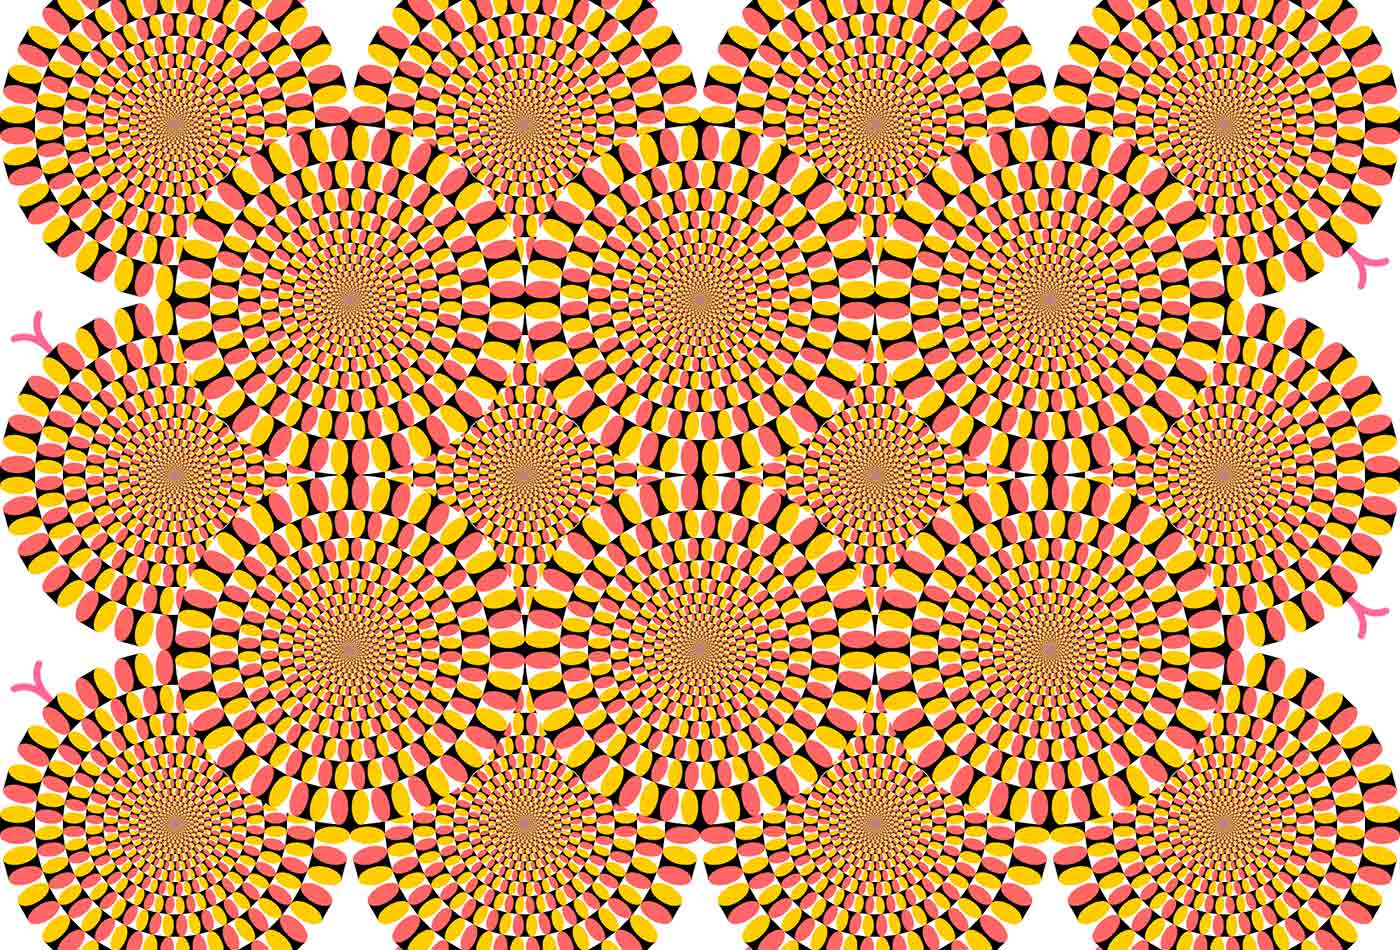 An optical illusion similar to Rotating Snakes by Kitaoka Akiyoshi.